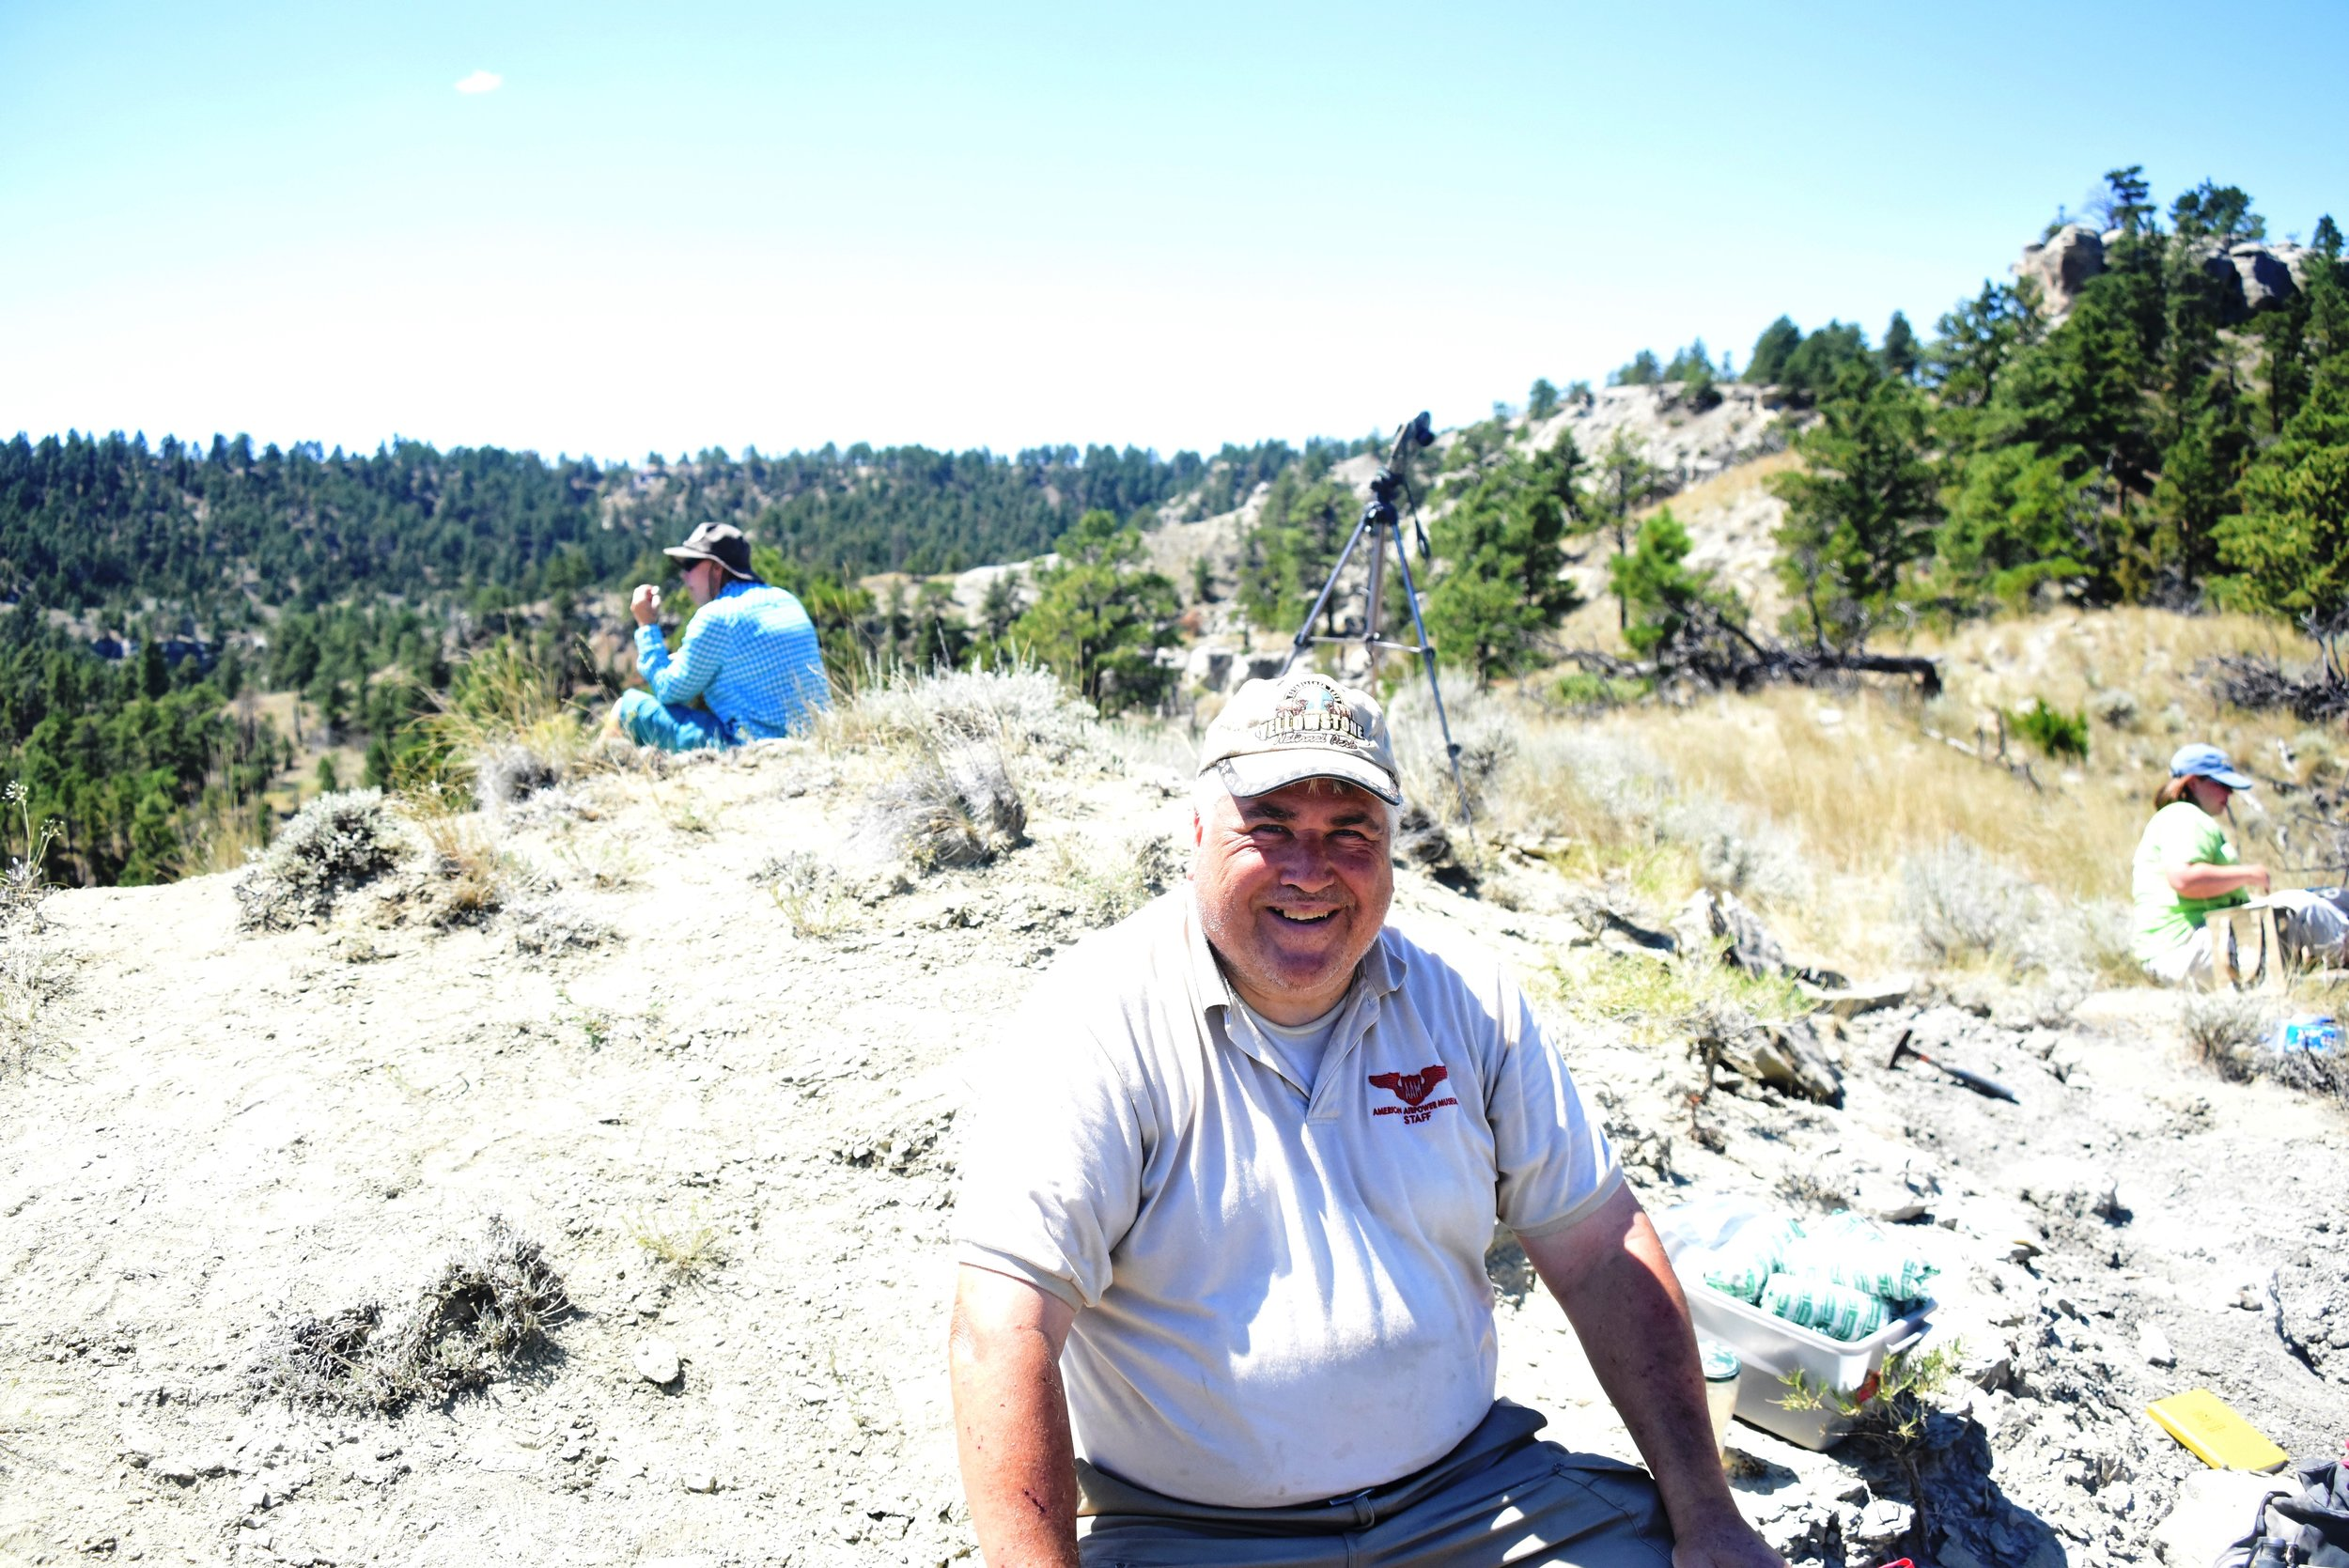 DSC_0664_Wed._7-27-2016_Montana Mtn. Top Dig Site (2).JPG